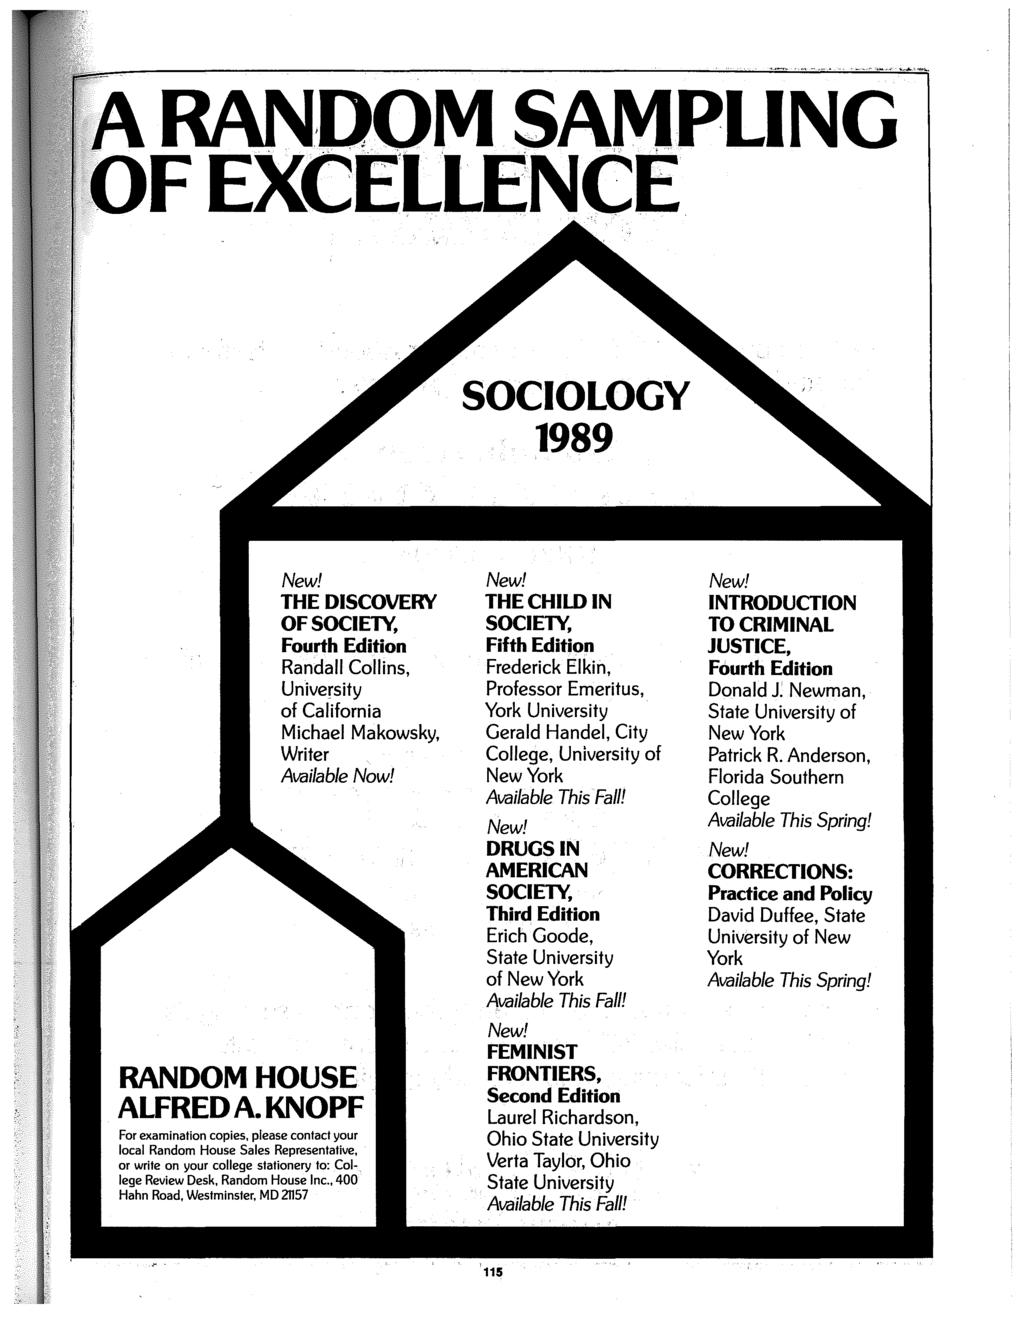 A RAN.DOM SAMPLING ~of EXCELLENCE SOCIOLOGY 1989 New! THE DISCOVERY OF SOCIETY, Fourth Edition Randall Collins, University of California Michael Makowsky, Writer Available Now! RANDOM HOUSE ALFRED A.